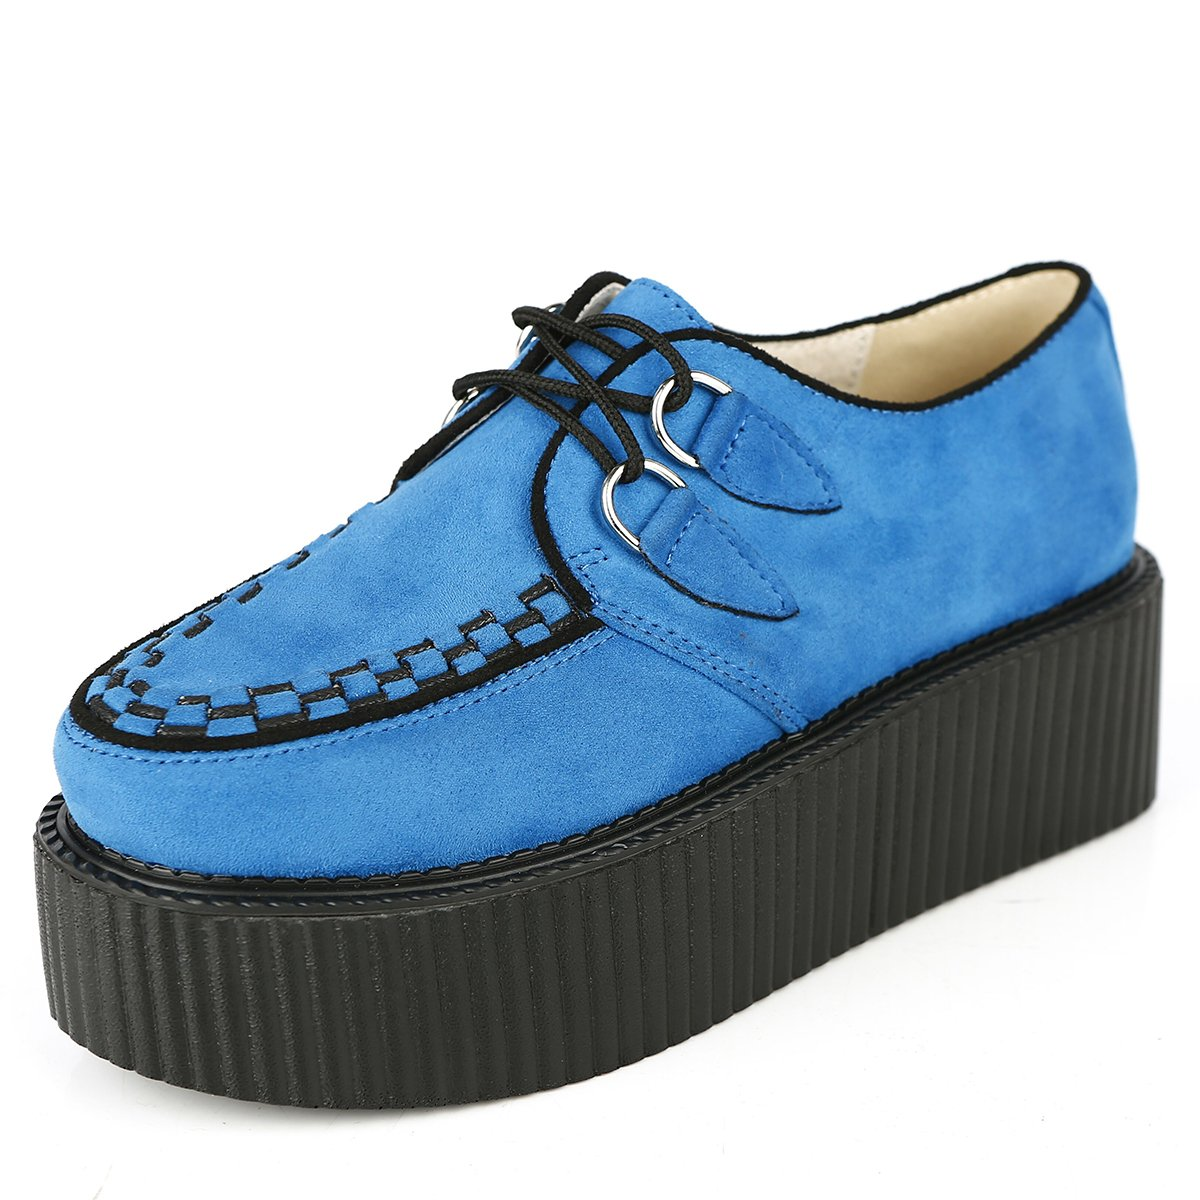 RoseG Femmes Plate Lacets Plate Creepers Forme Gothique Punk Creepers Casual Bleu Chaussures Bleu 6be6326 - fast-weightloss-diet.space